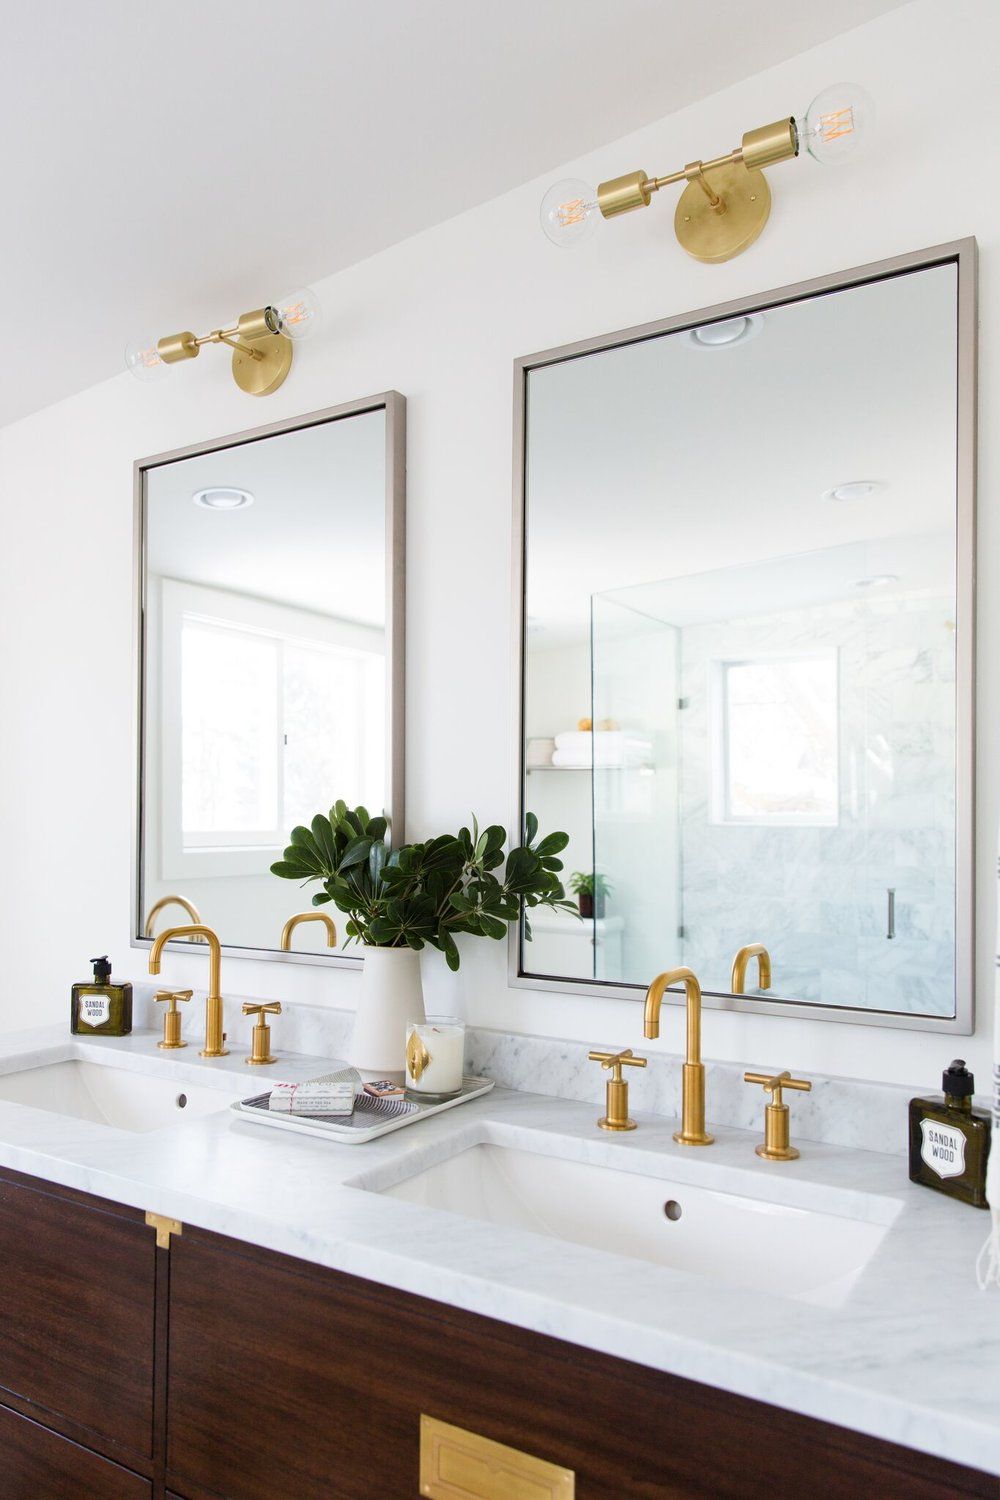 Top of dark wooden vanities with gold details